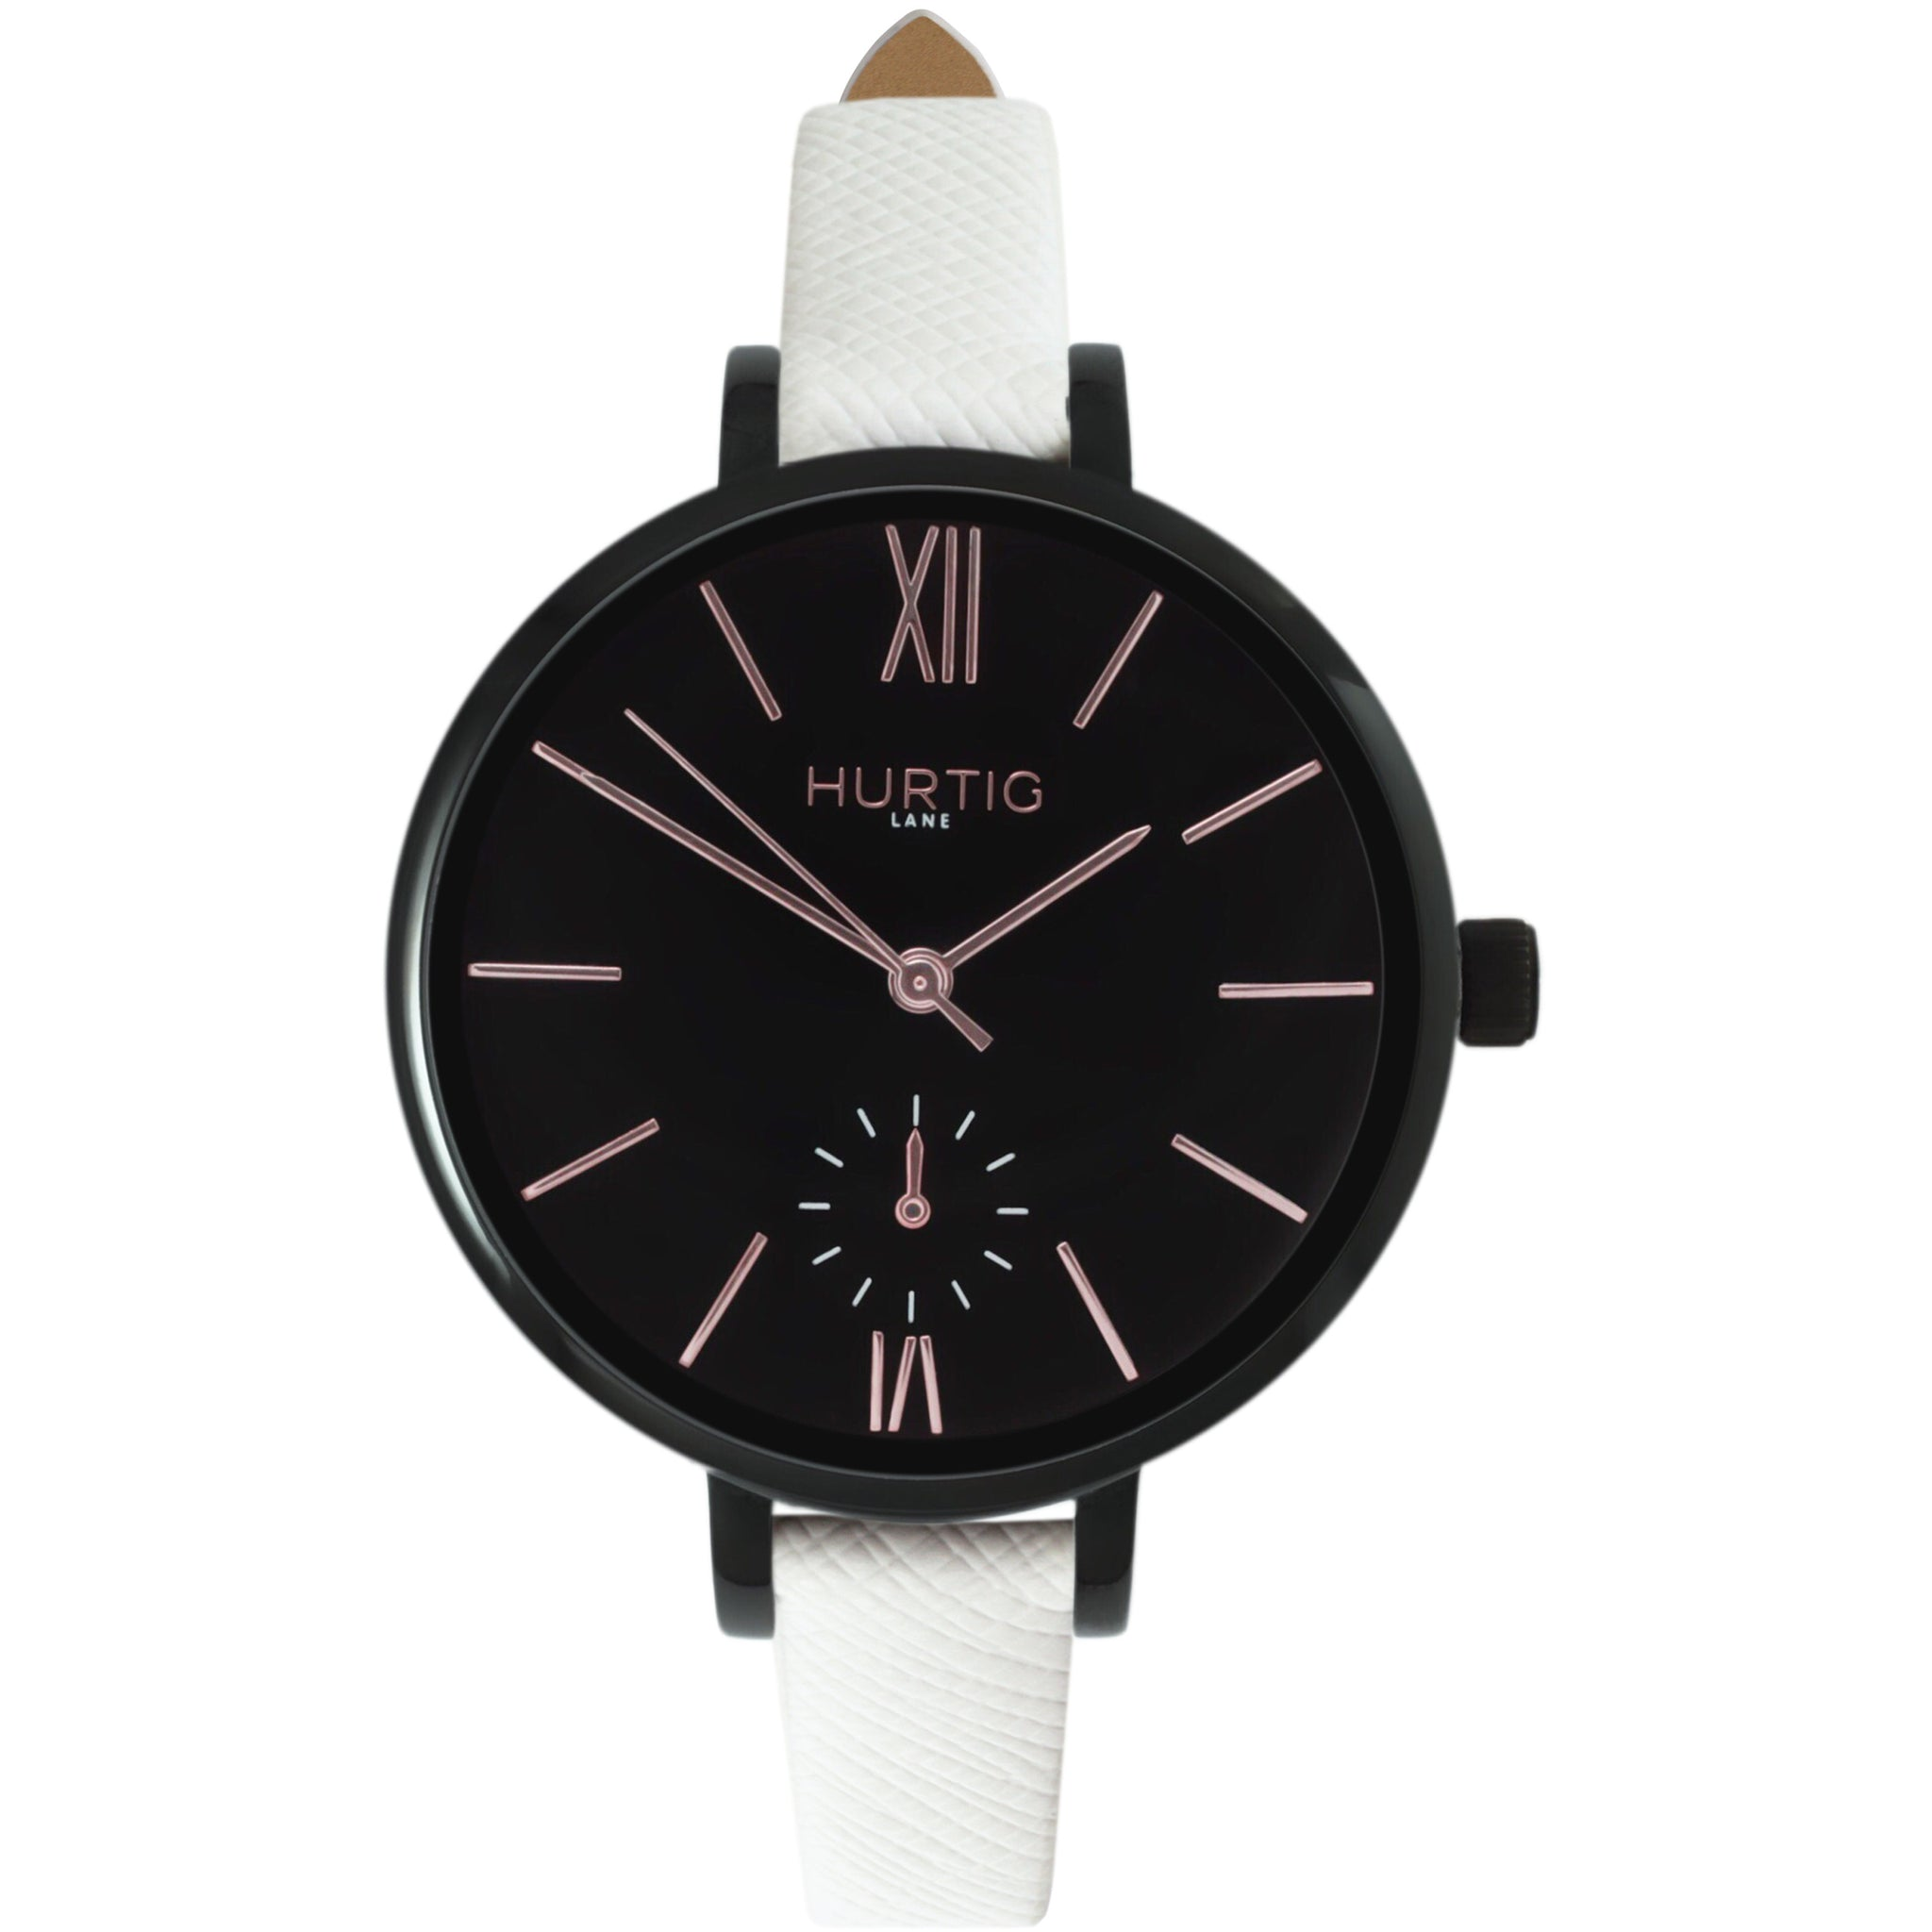 AMALFI WOMEN'S WATCH, BLACK/BLACK/WHITE